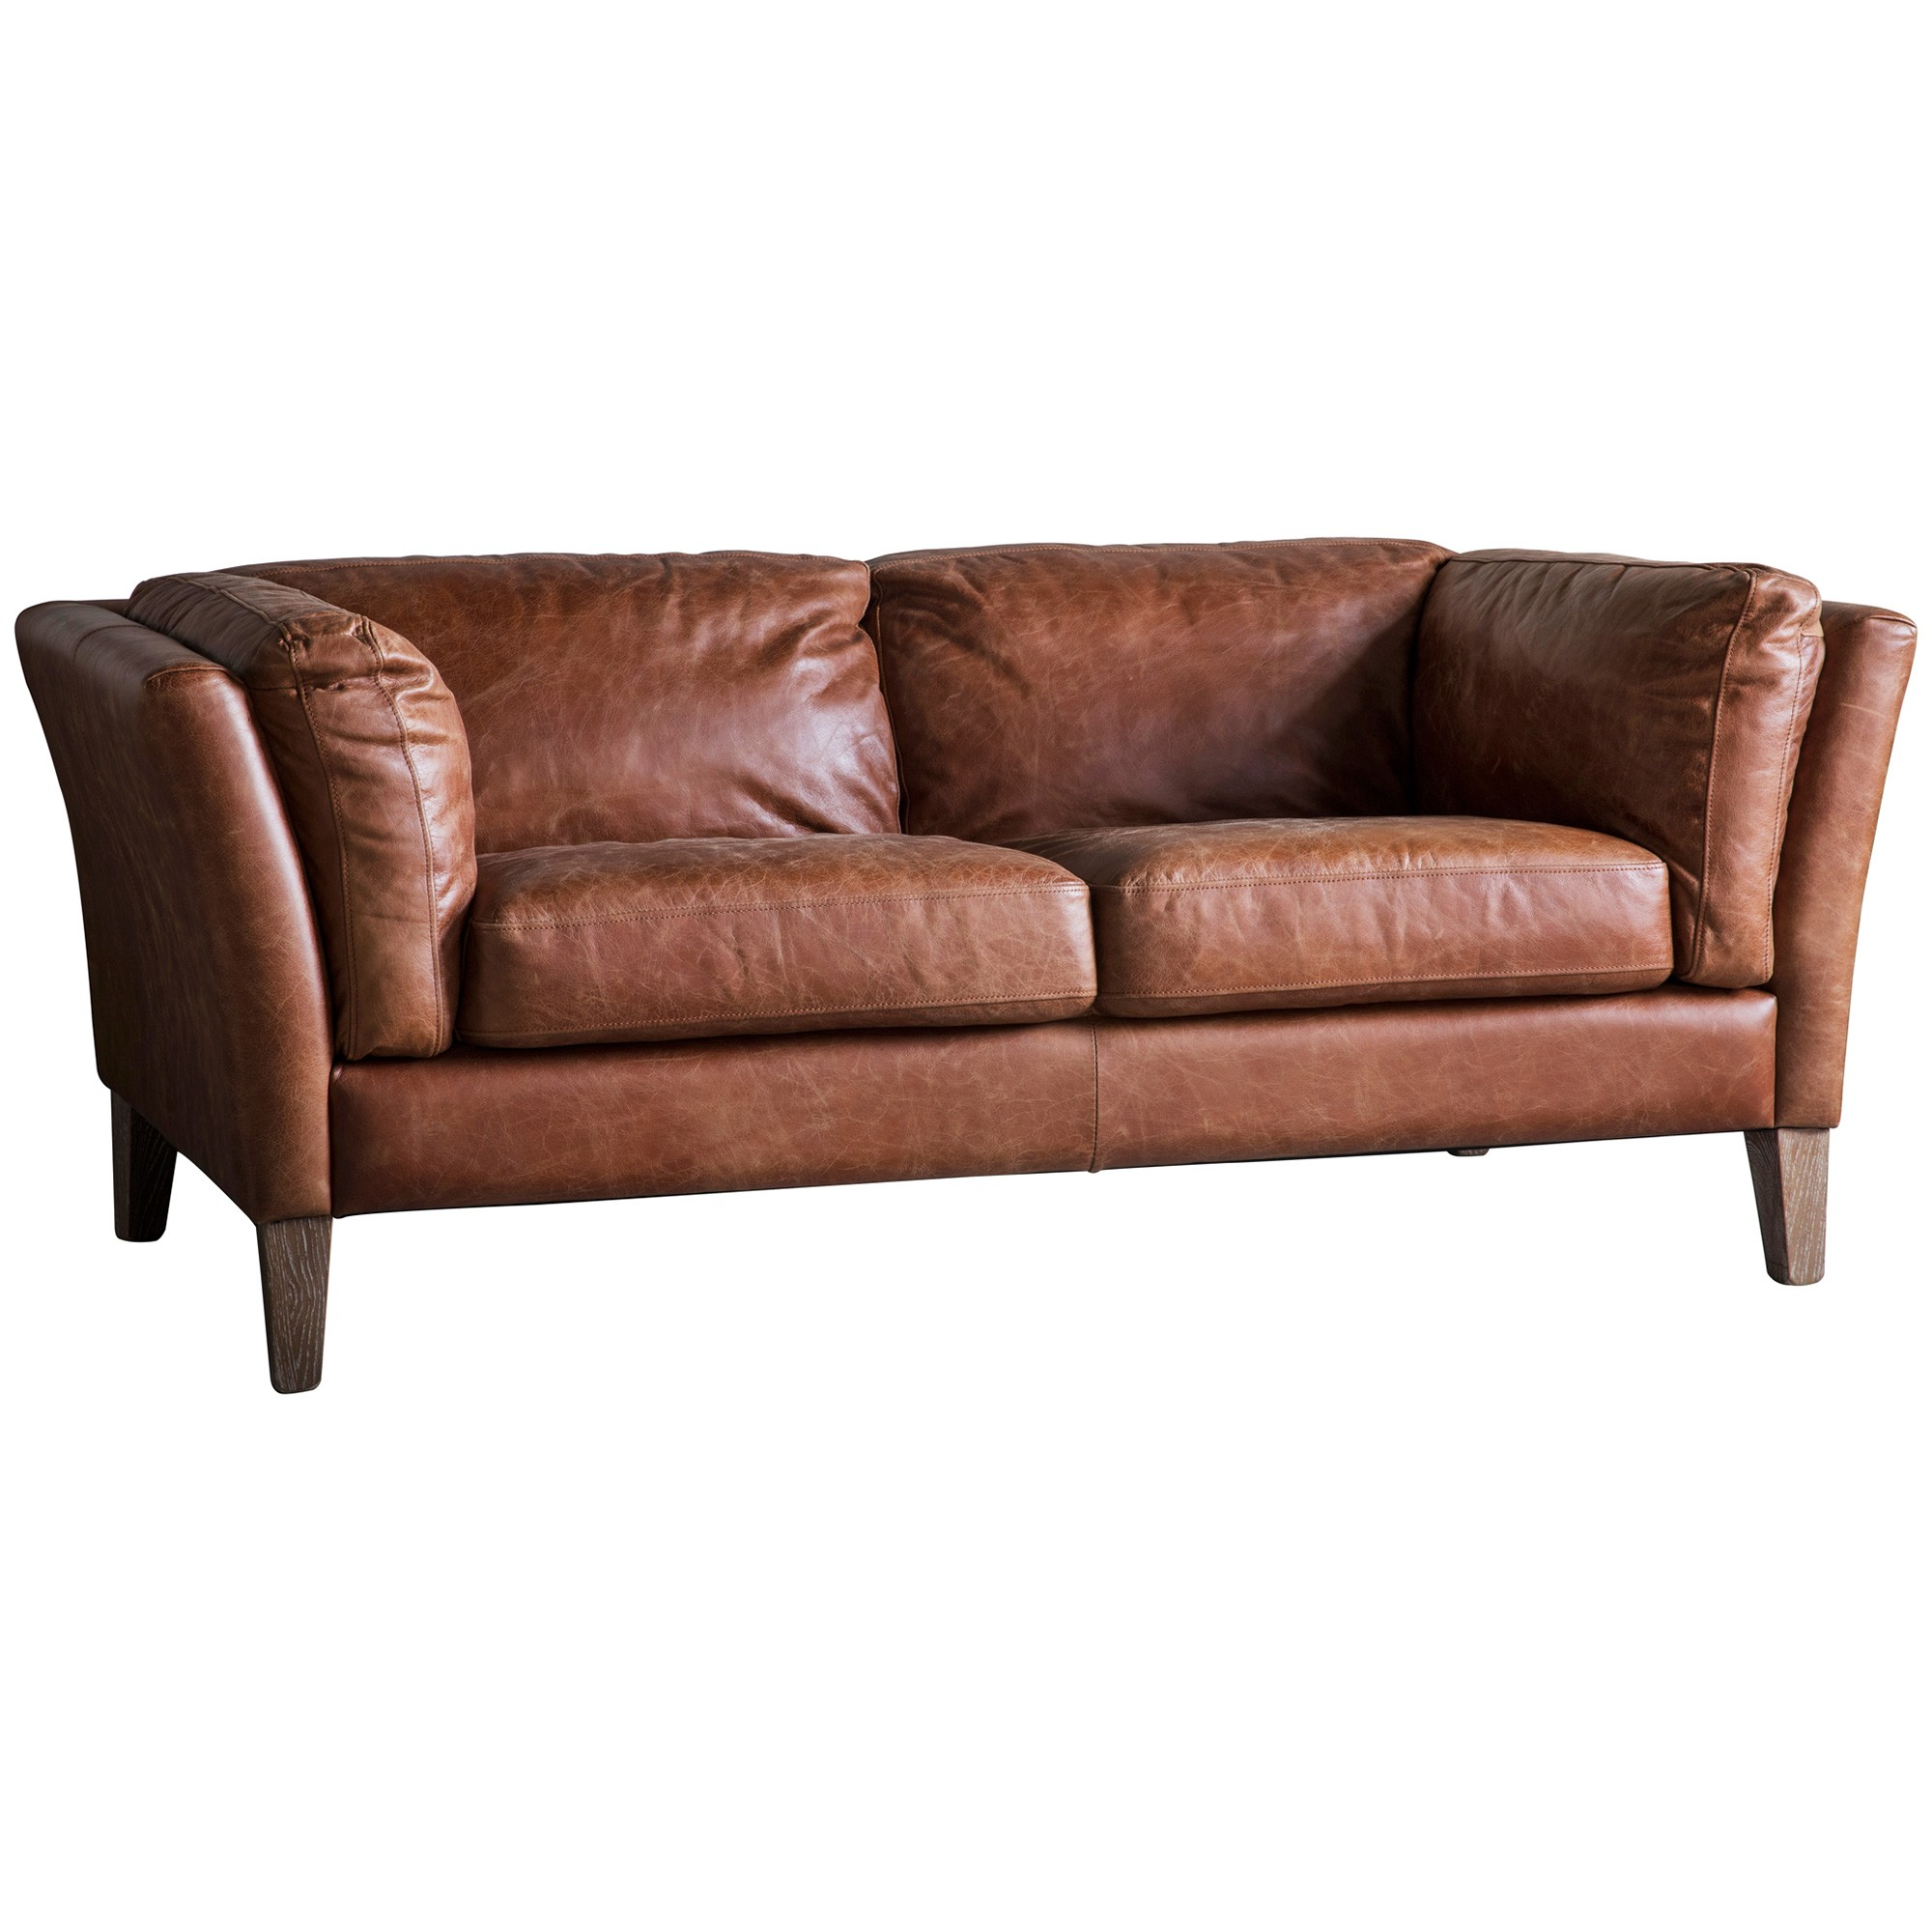 Ebury Vintage Leather 2 Seater Sofa